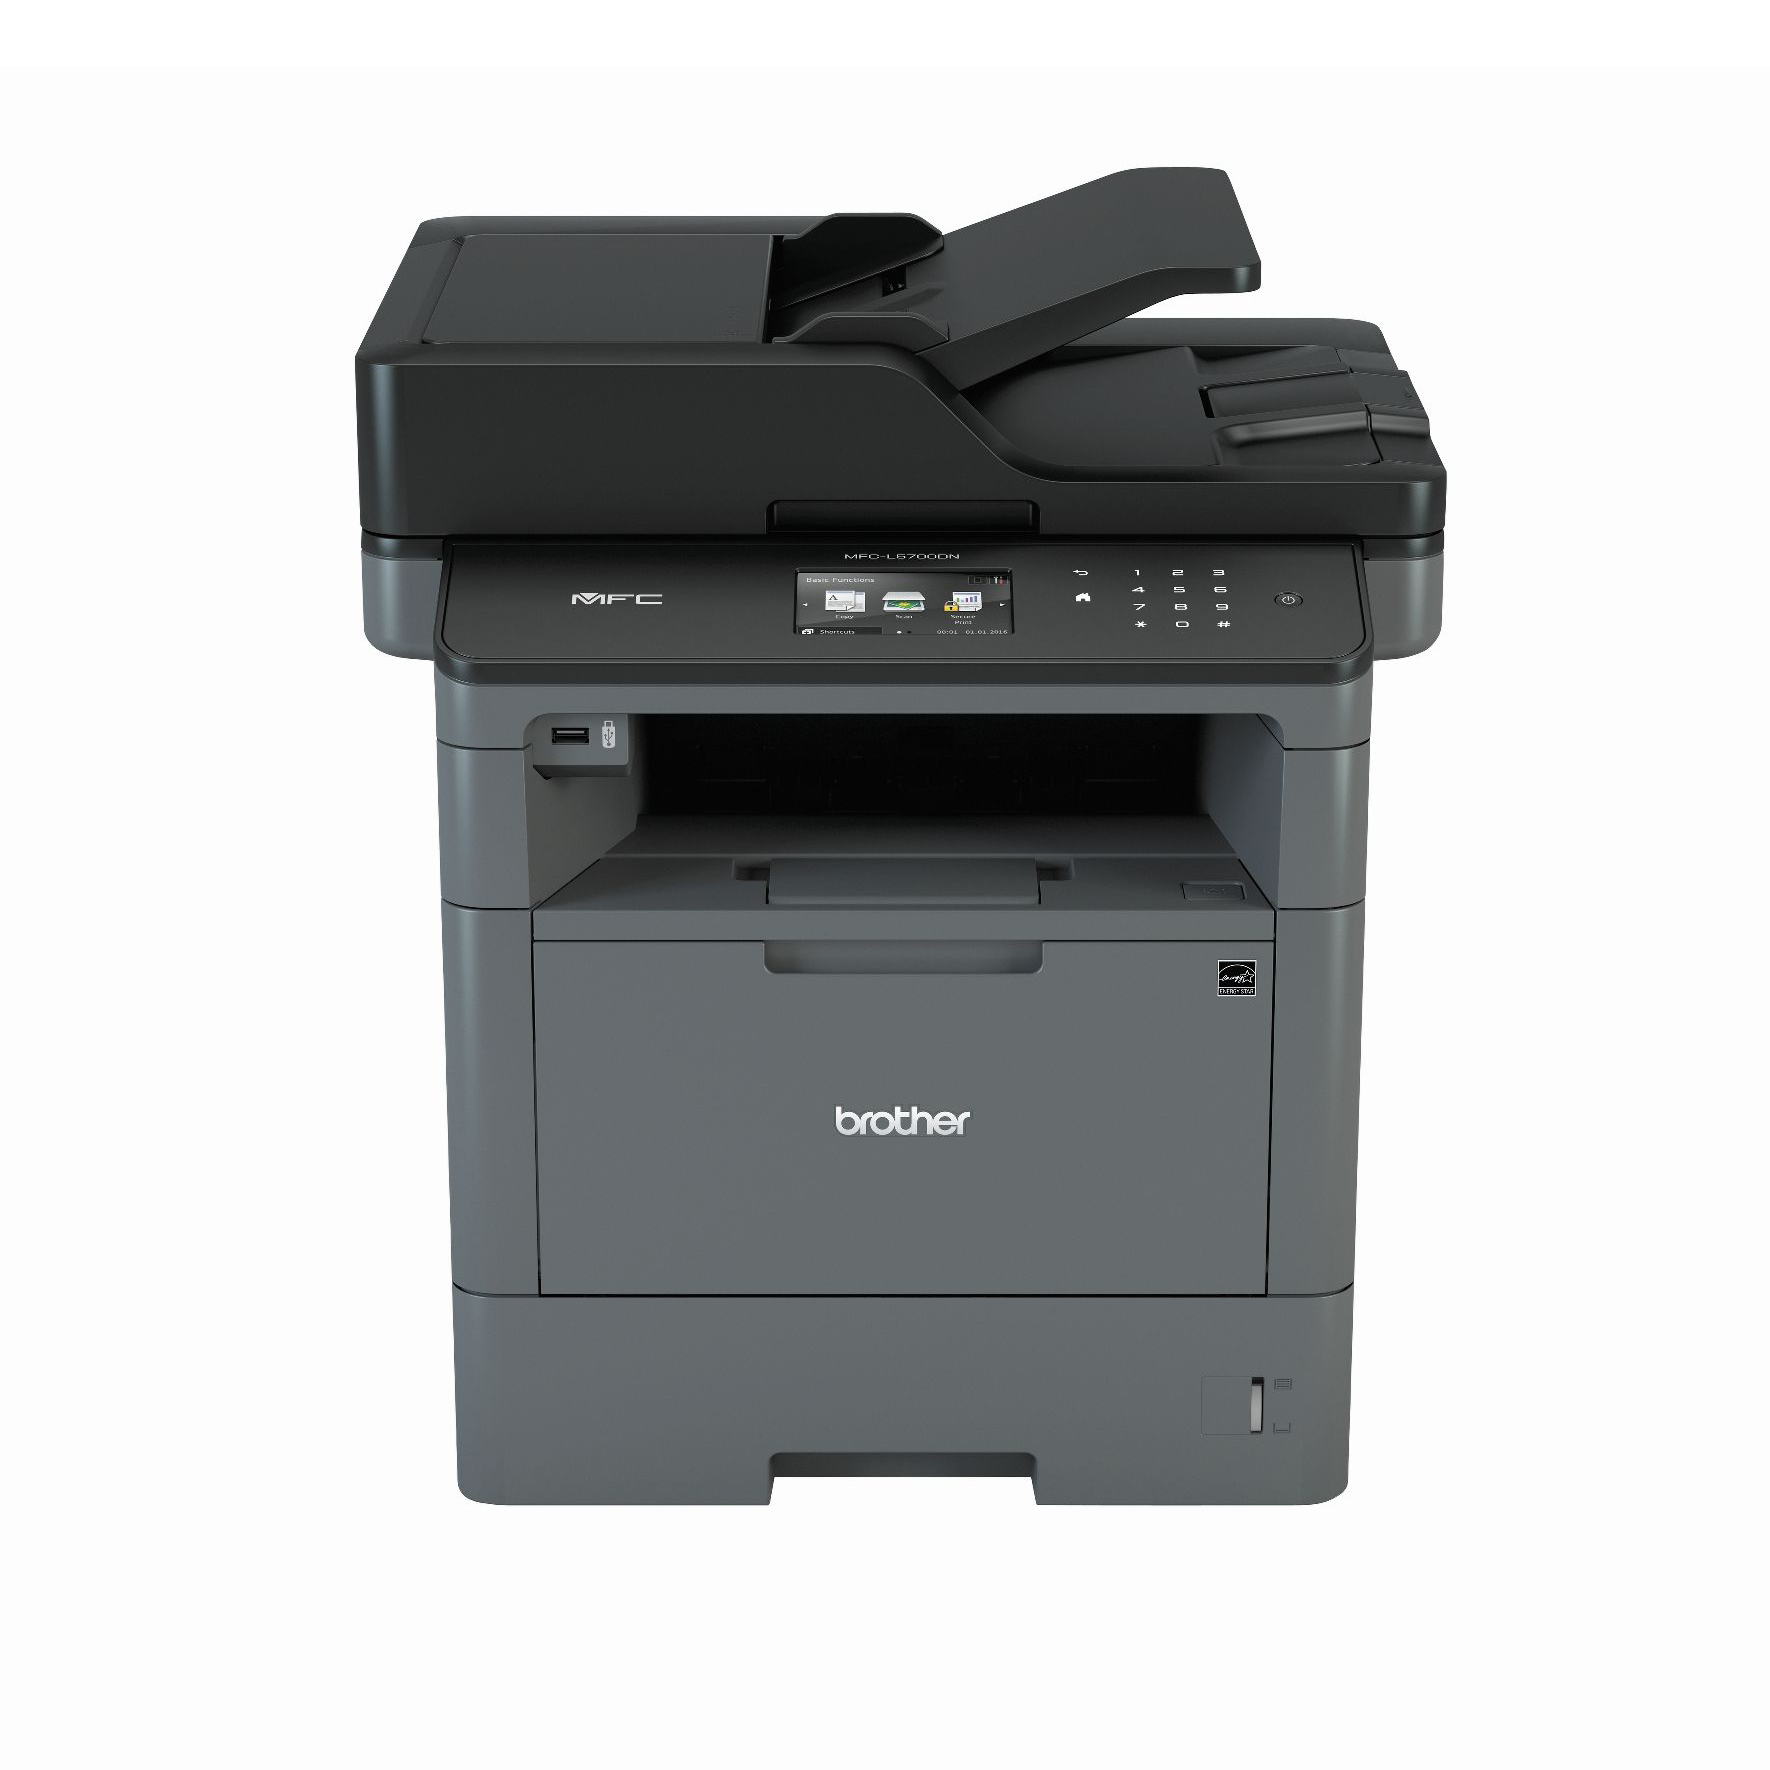 Mfc-l5700dn - Multi Function Printer - Laser - A4 - USB / Ethernet